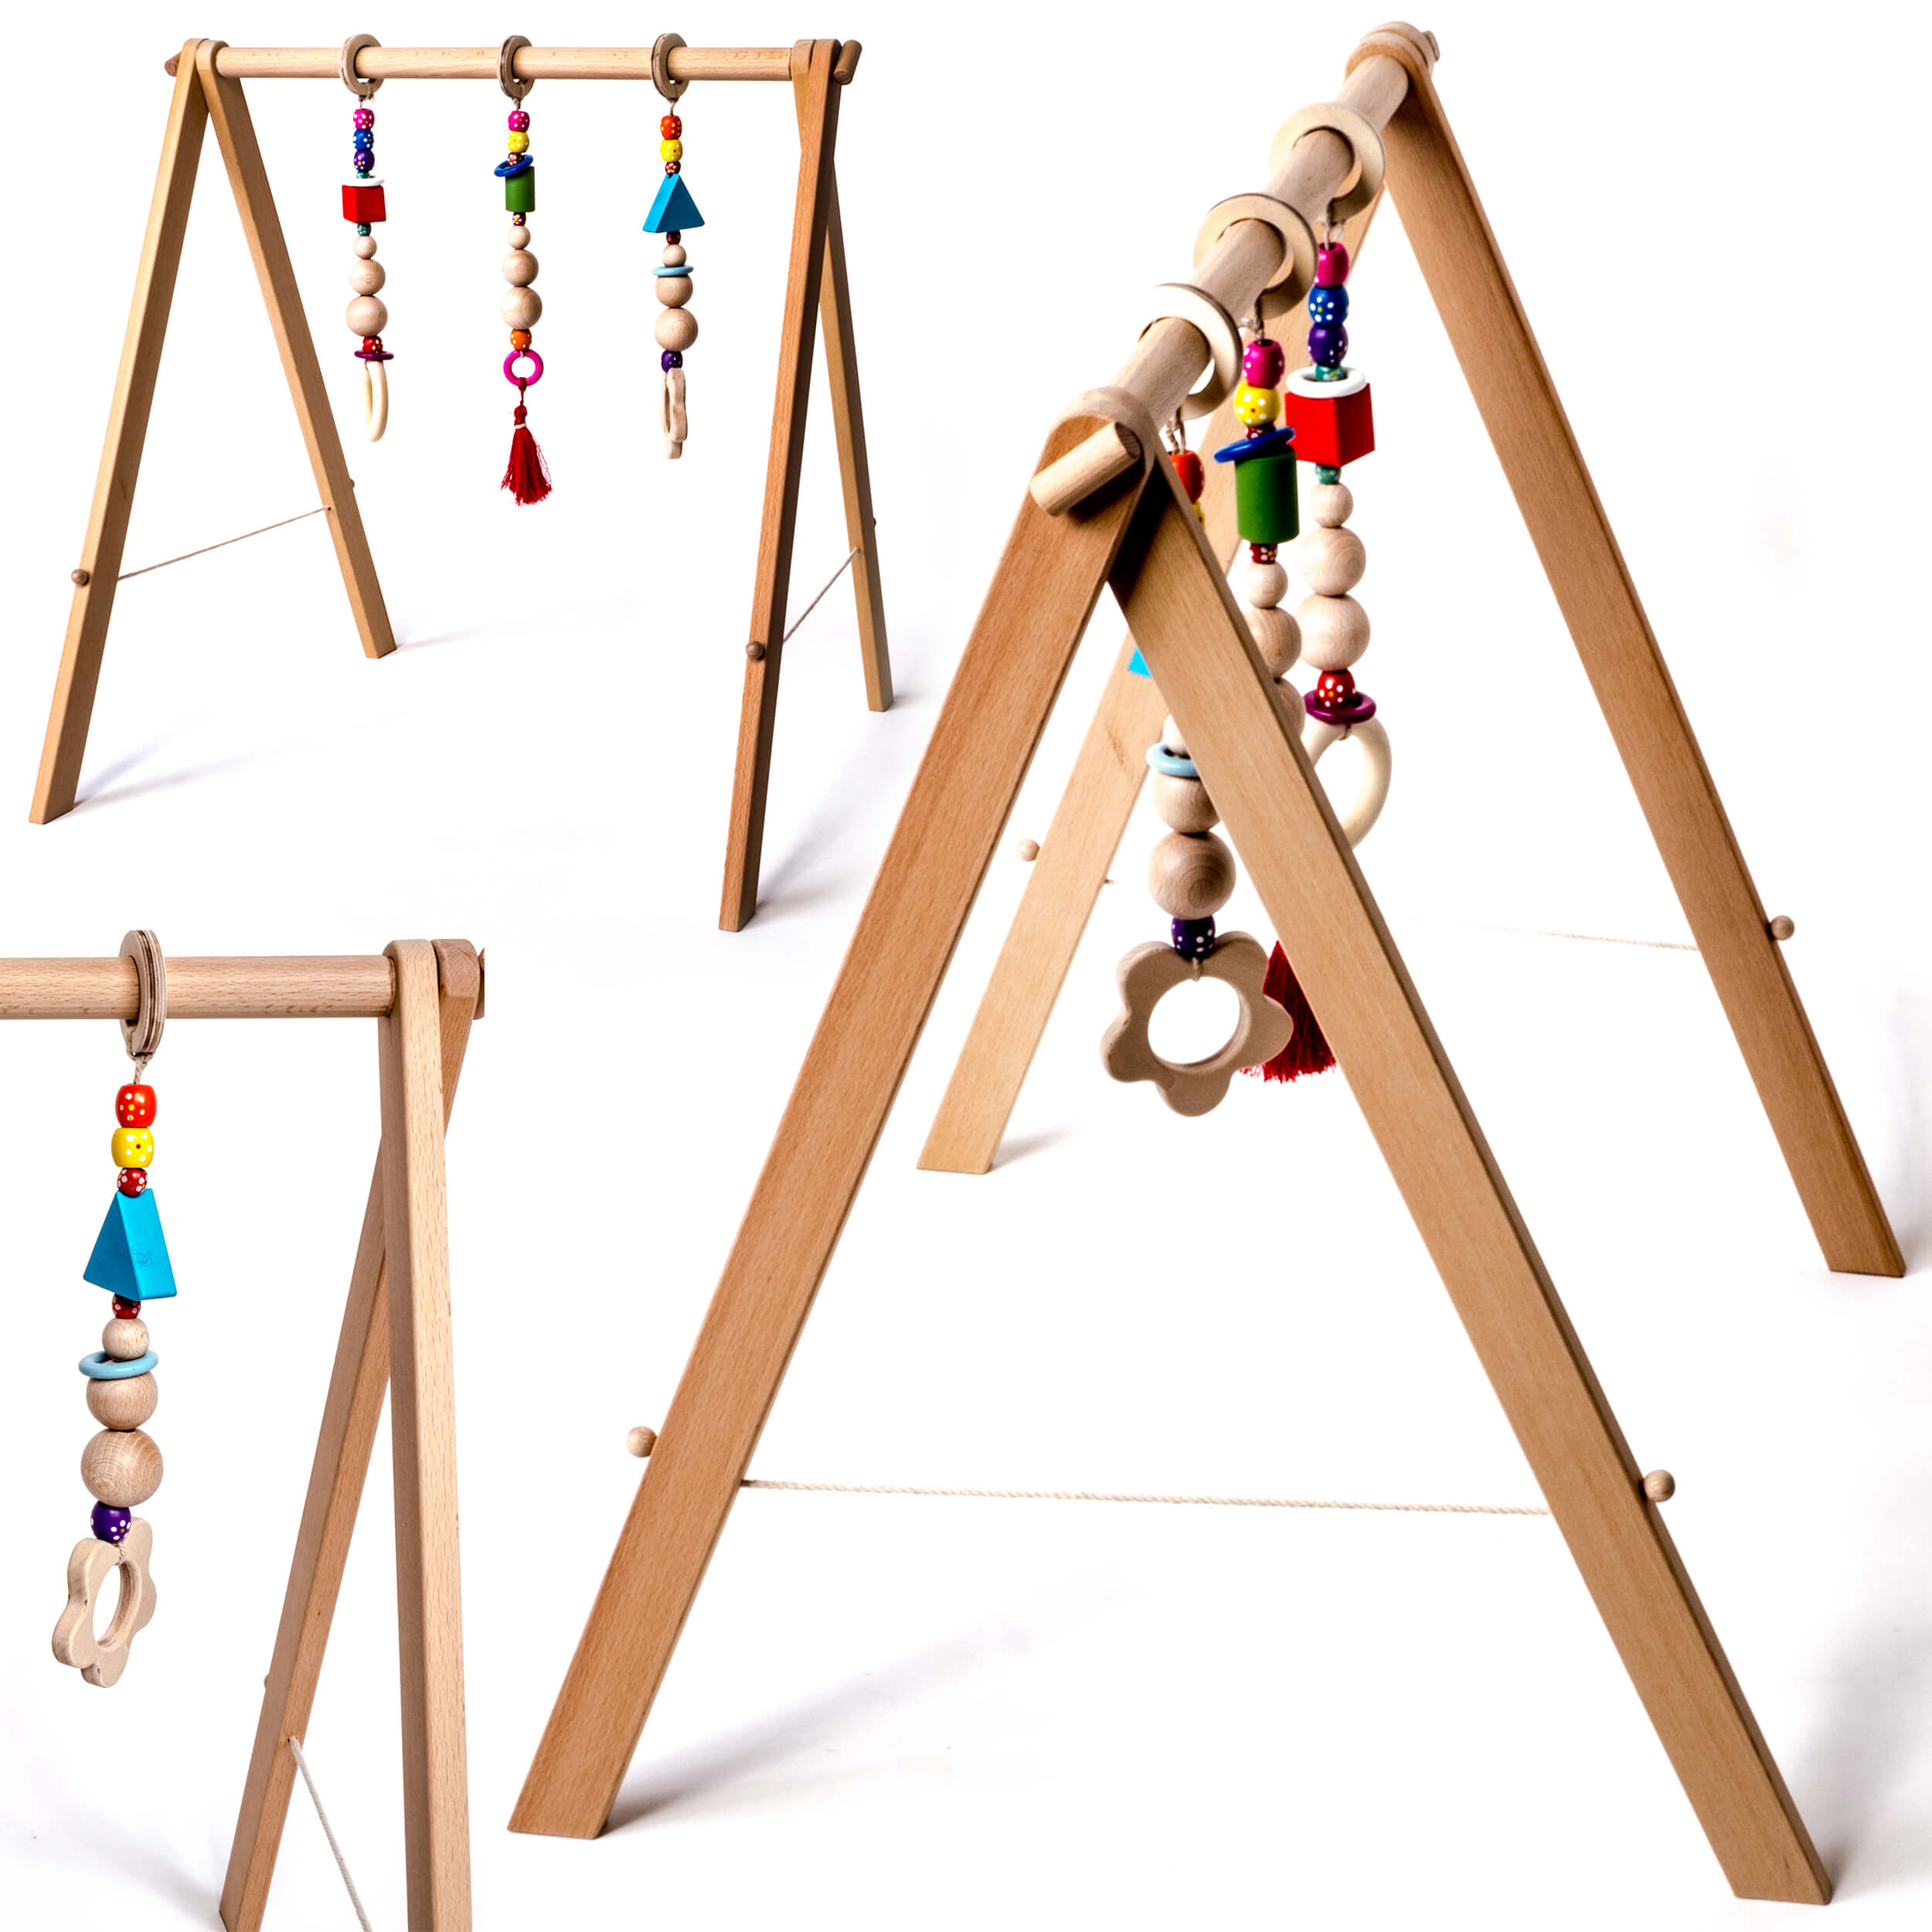 INGODI Wooden Mobile Baby Play Gym Toy Activity Set, Handmade Natural Wood Play Gym For Babies